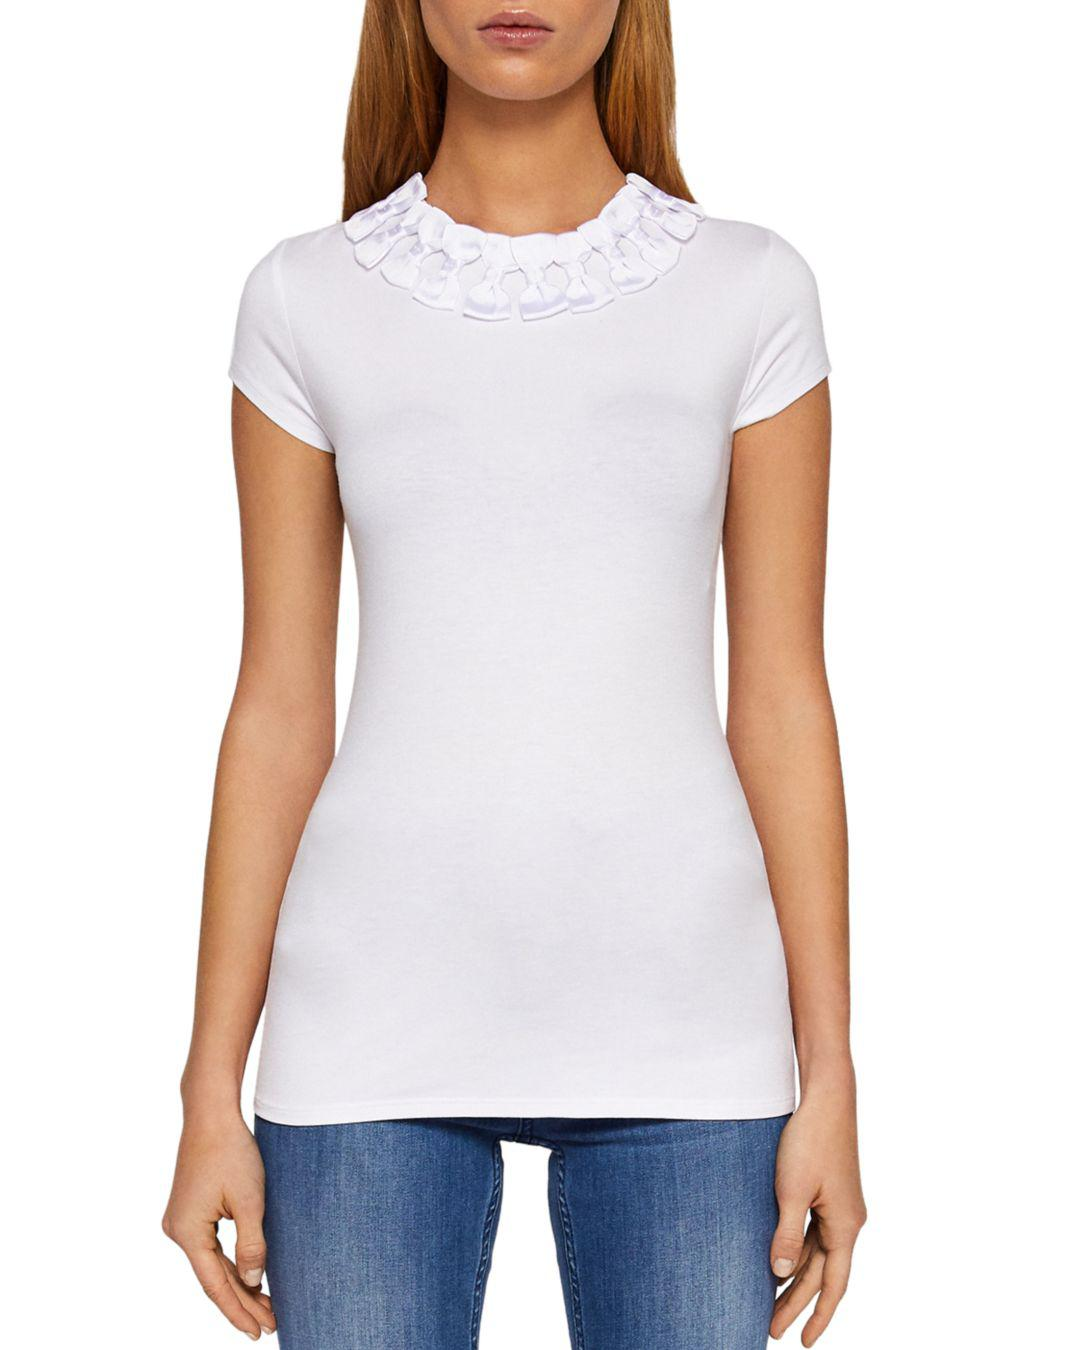 d29b83cb5f5ce Lyst - Ted Baker Charre Bow-trimmed Tee in White